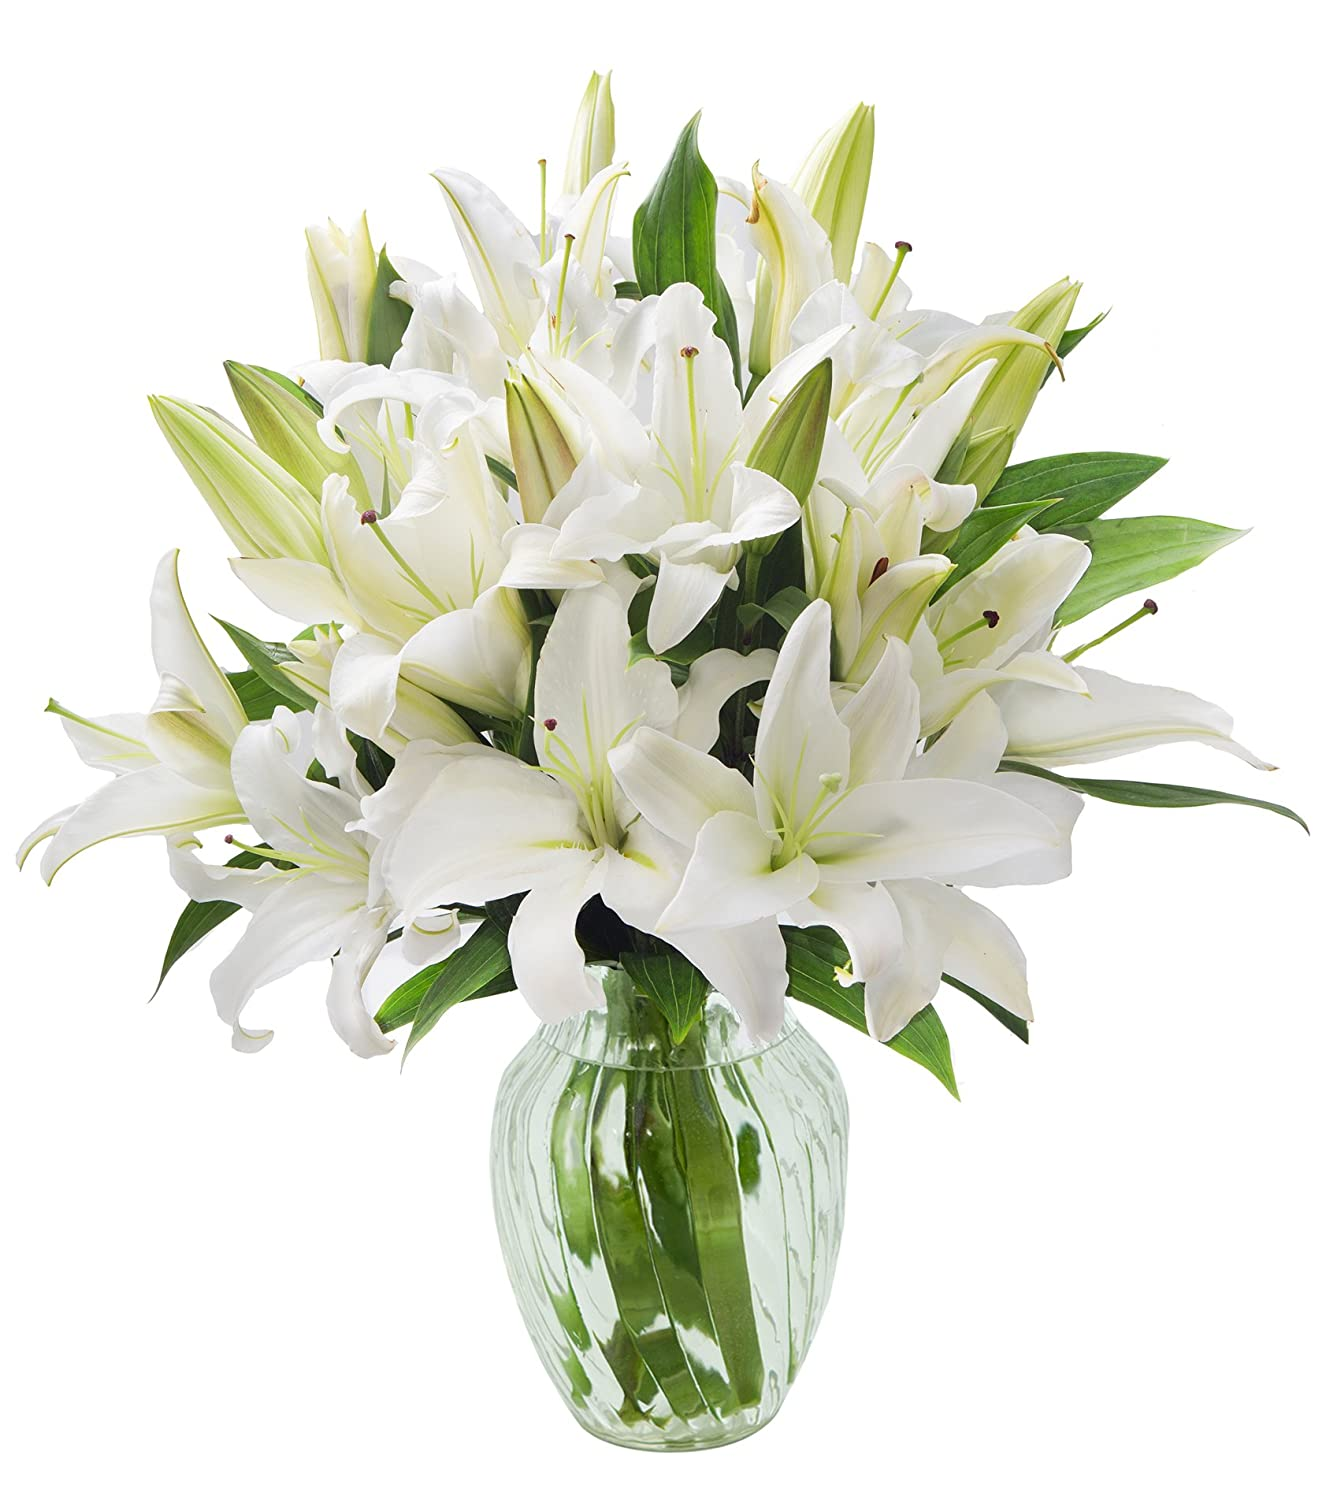 Amazon kabloom pure love white lily bouquet of 13 white lilies amazon kabloom pure love white lily bouquet of 13 white lilies with vase grocery gourmet food izmirmasajfo